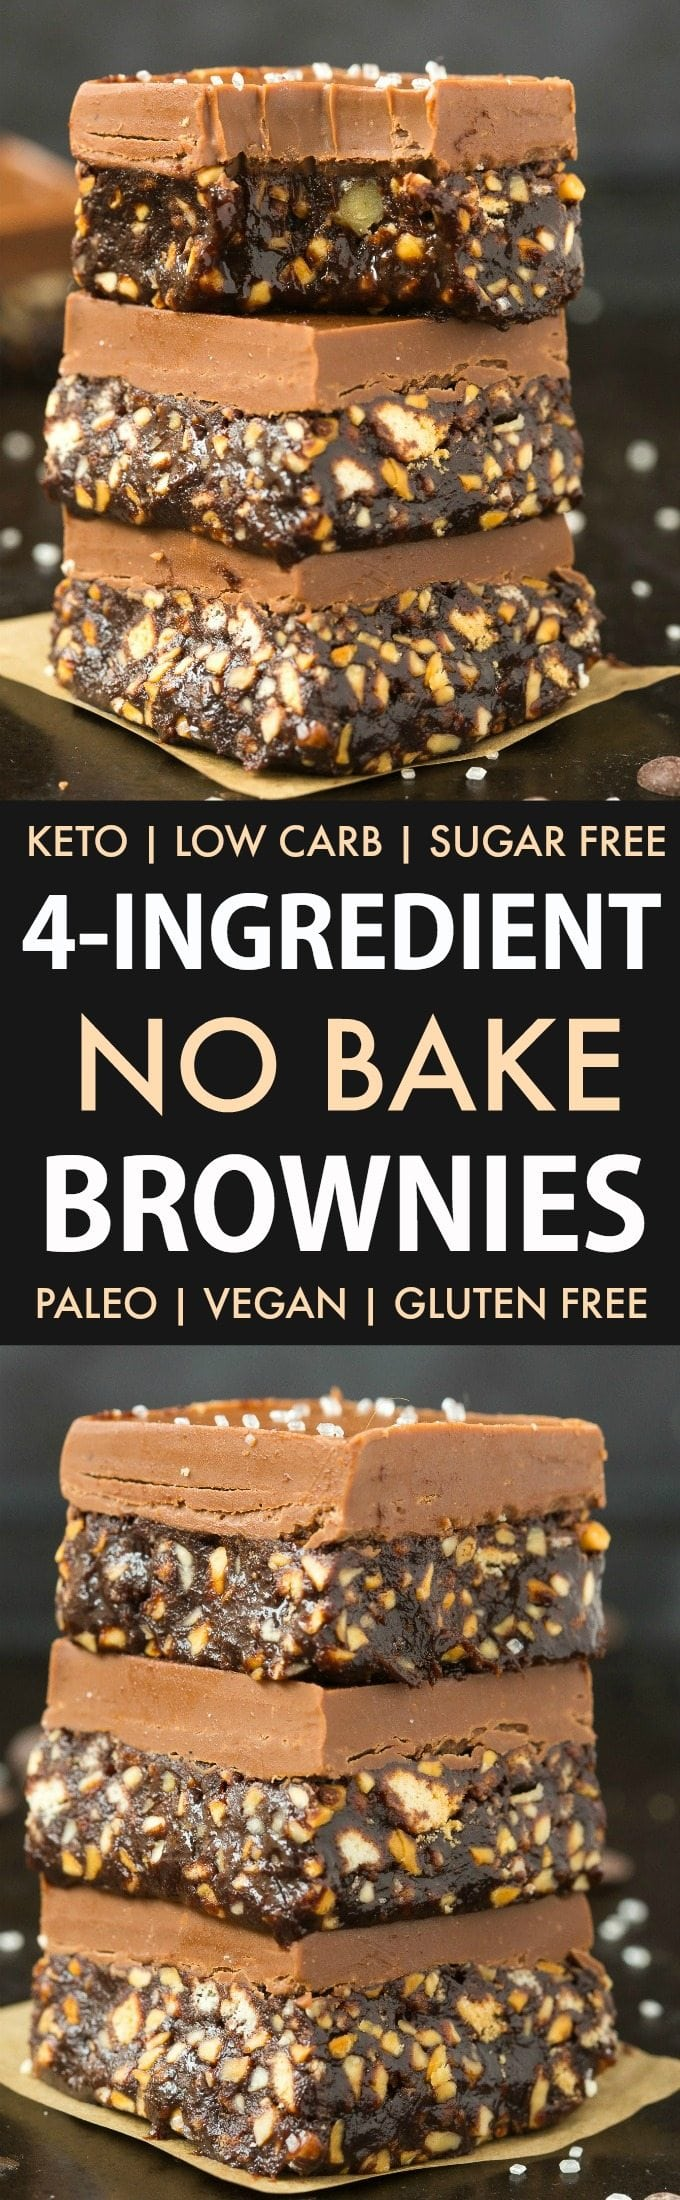 4-Ingredient No Bake Brownies (Keto, Paleo, Vegan, Sugar Free)- An easy 5 minute no bake raw brownie recipe which needs just 4 ingredients- Gooey, fudgy and the ultimate ketogenic dessert recipe! #ketodessert #ketogenicdessert #lowcarb #vegan #paleo #sugarfree #brownies | Recipe on thebigmansworld.com